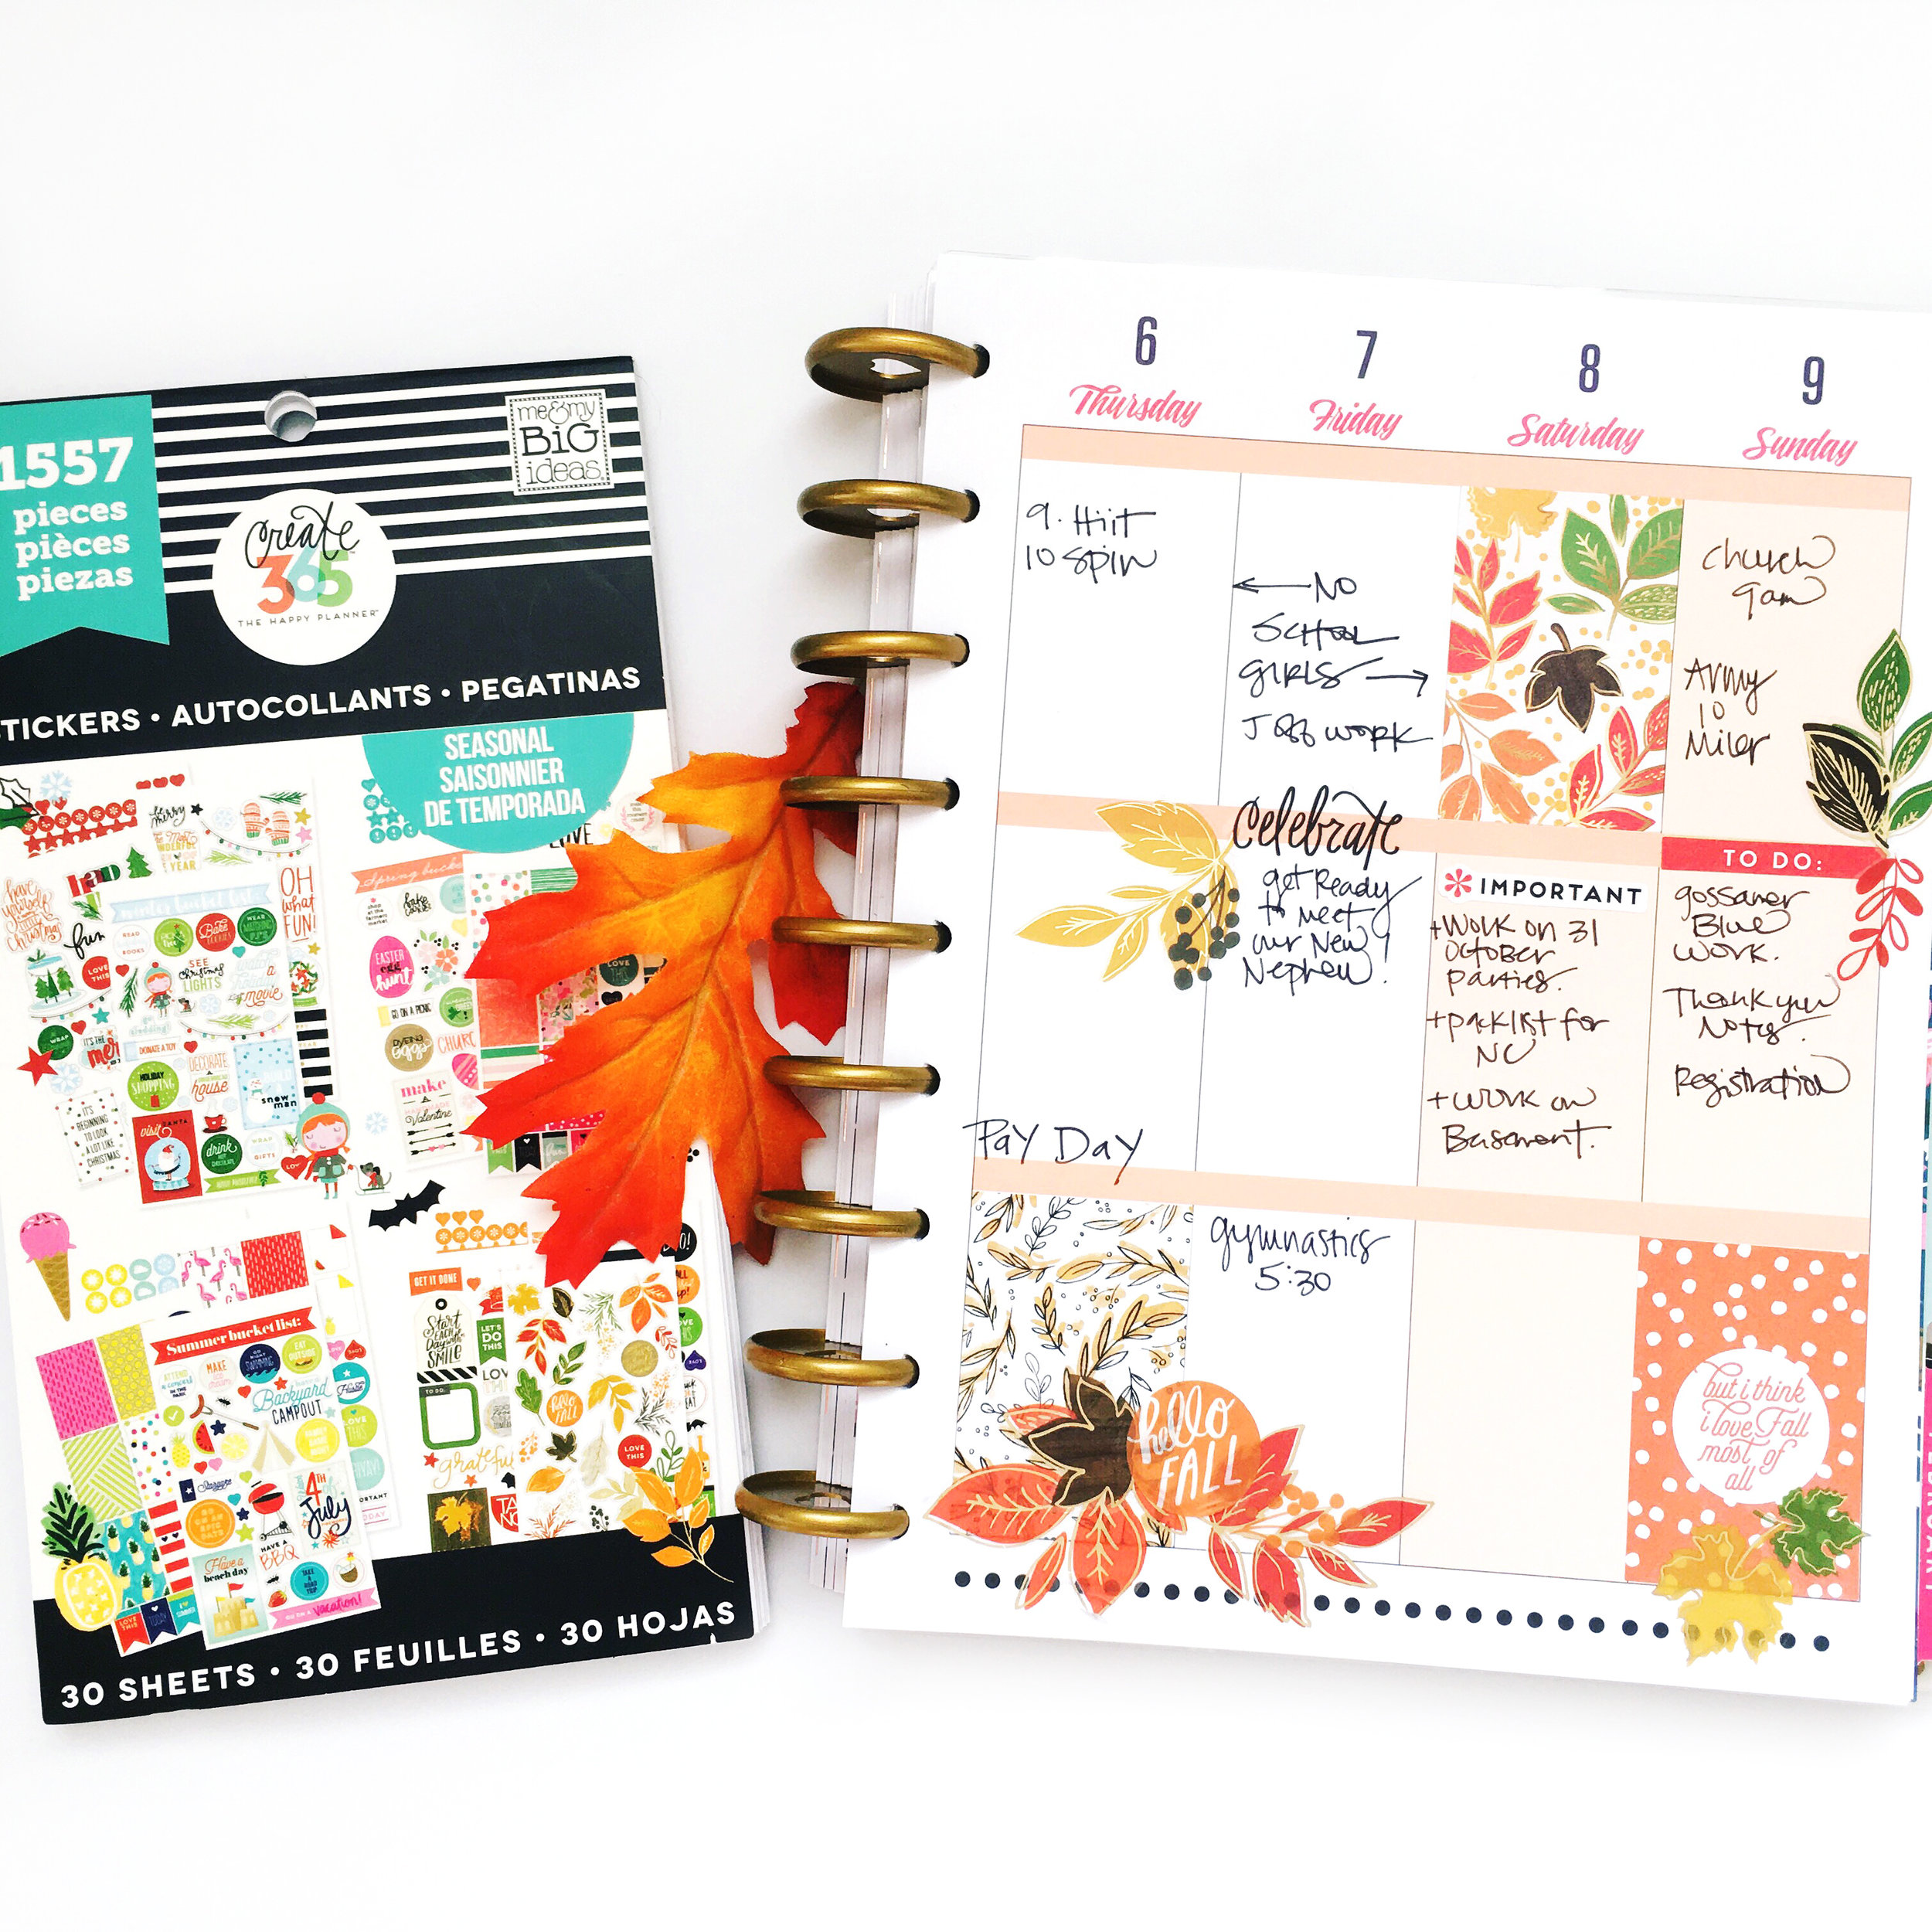 celebrating Fall w/ our 'Seasonal' stickers — me & my BIG ideas